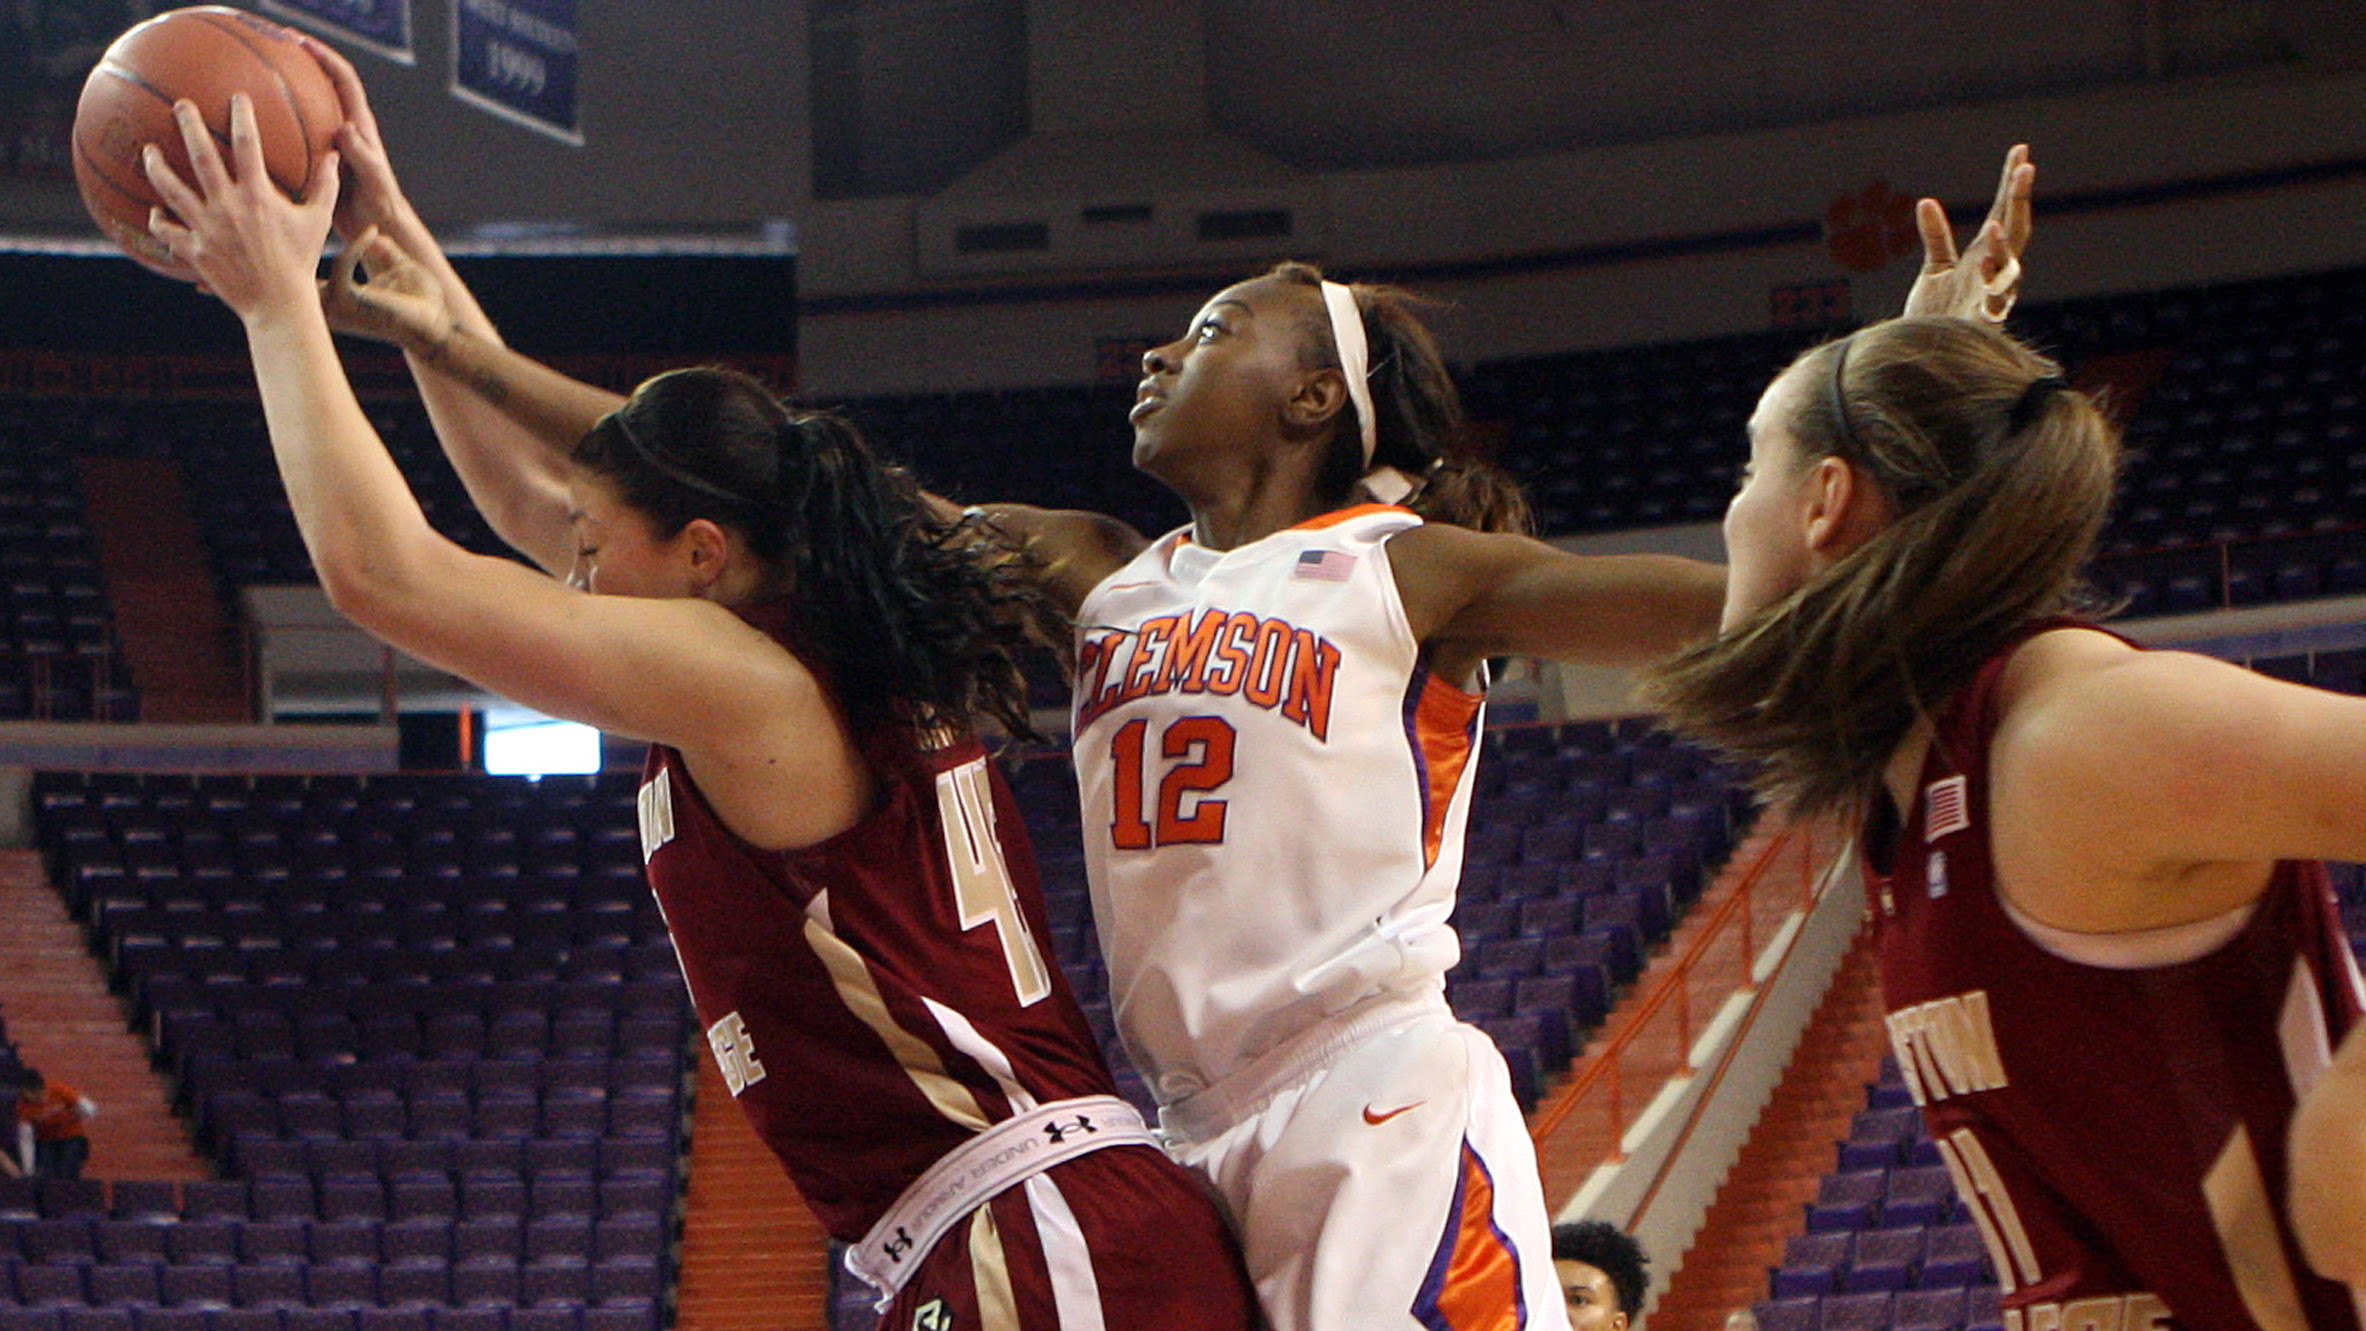 Lady Tigers Play At Wake Forest on Thursday